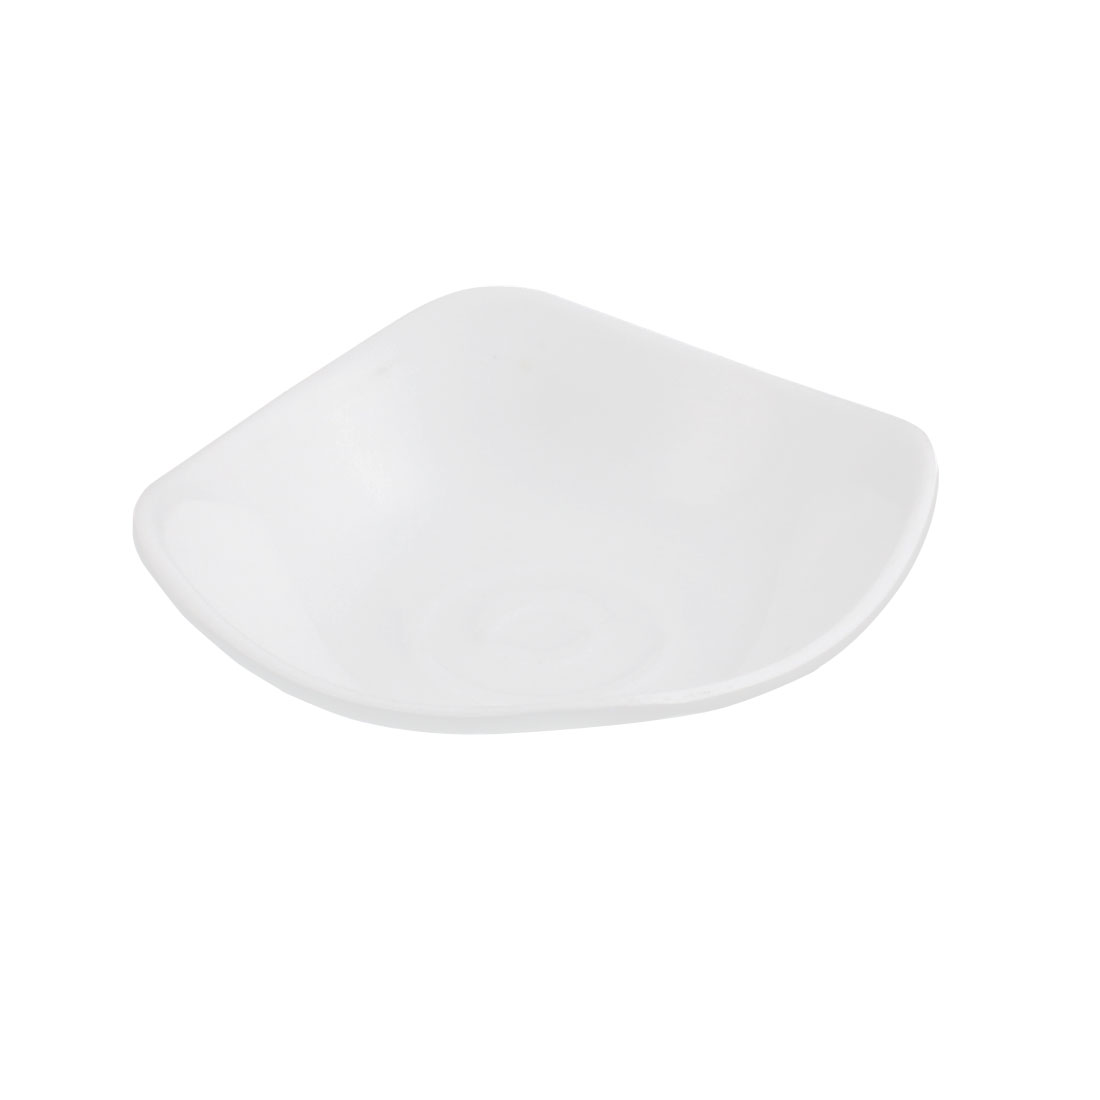 Plastic Square Shape Soy Sauce Dipping Sushi Dish Plate White